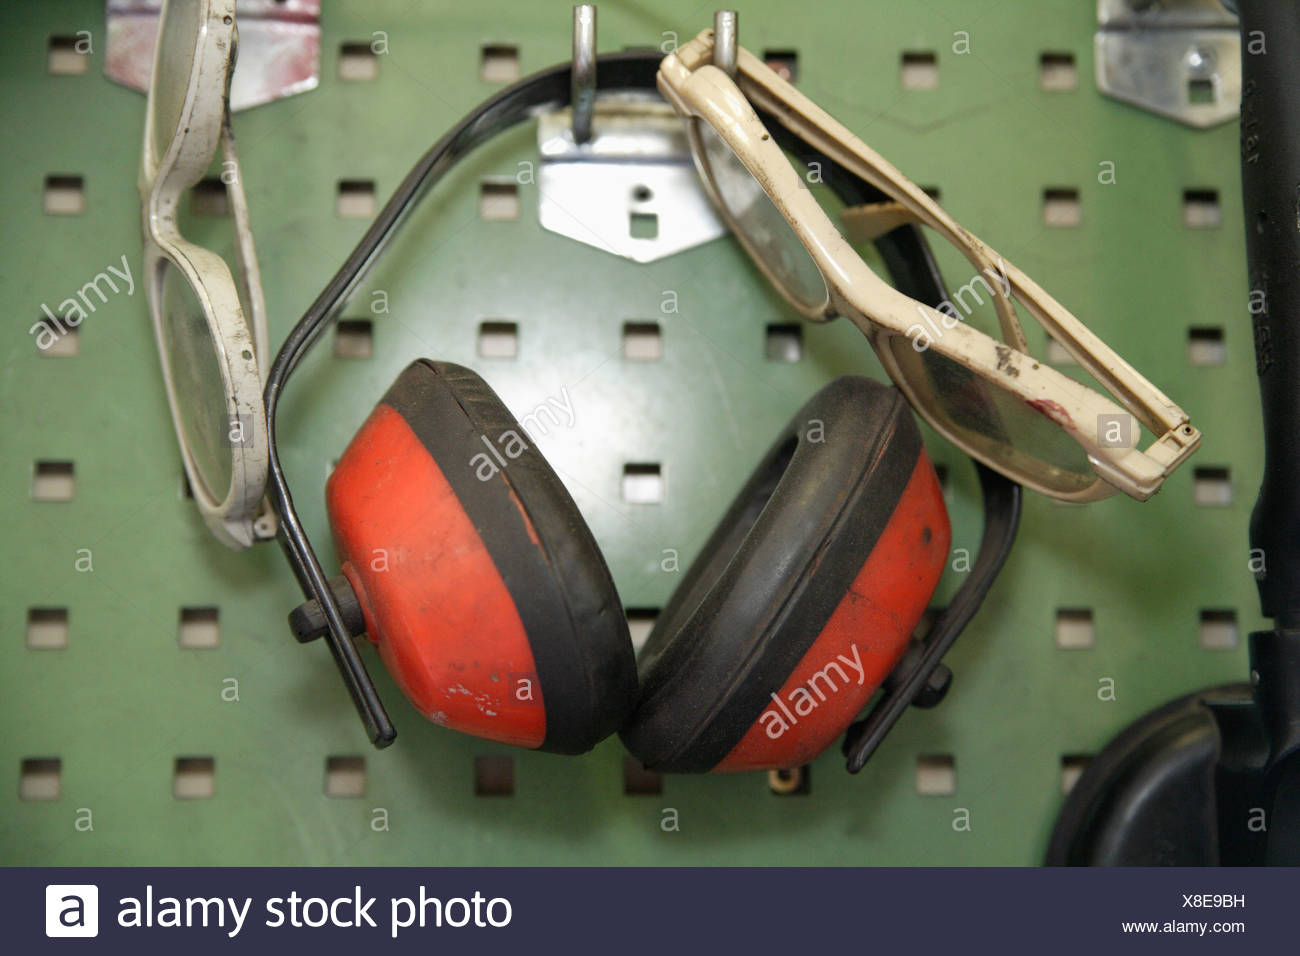 Germany, Ebenhausen, Close up of safety glasses and ear protectors on pegboard in repair garage - Stock Image